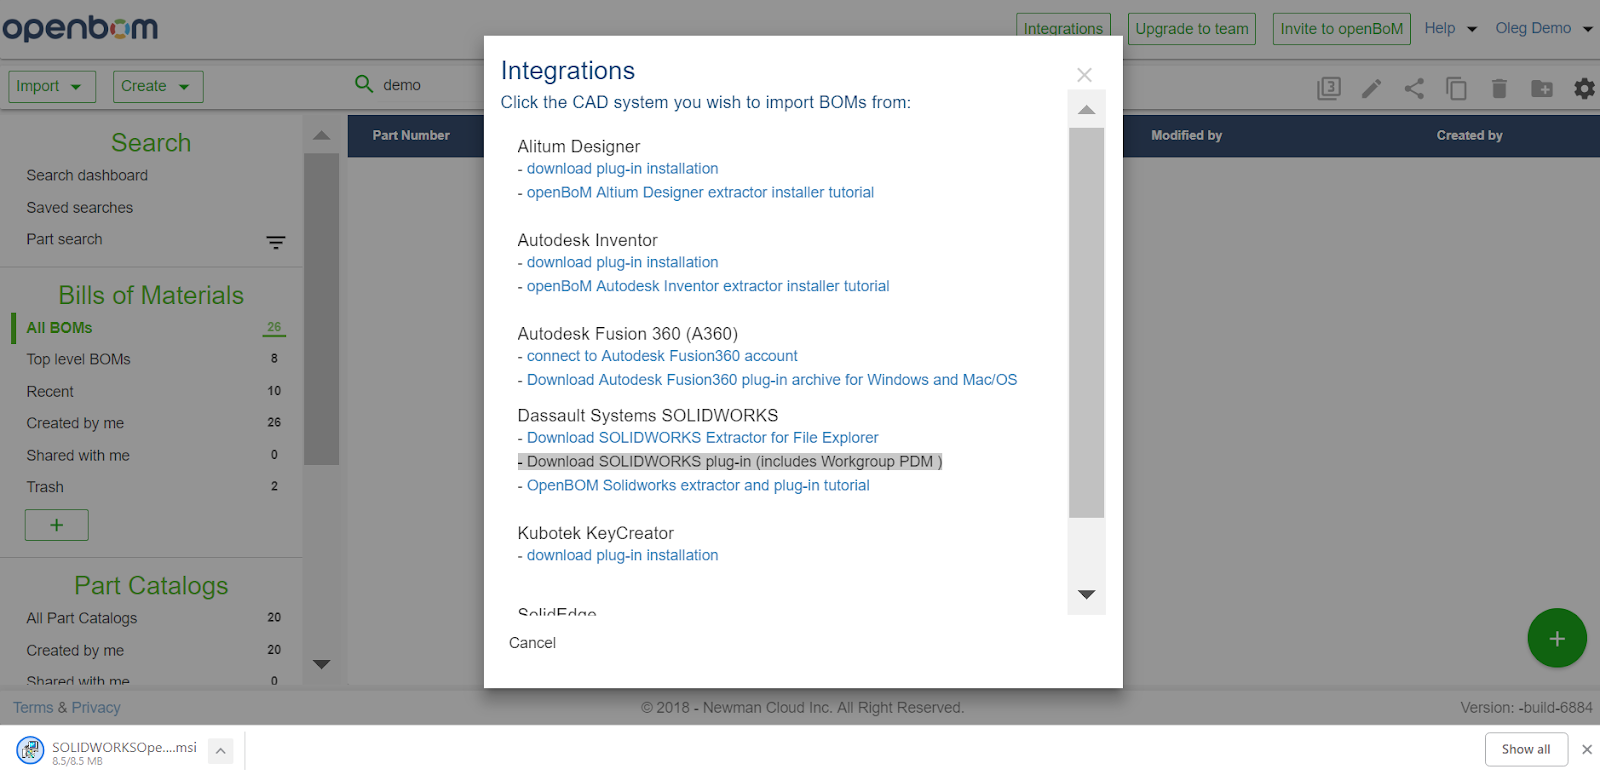 10 steps in 5 minutes — How to get started with OpenBOM and